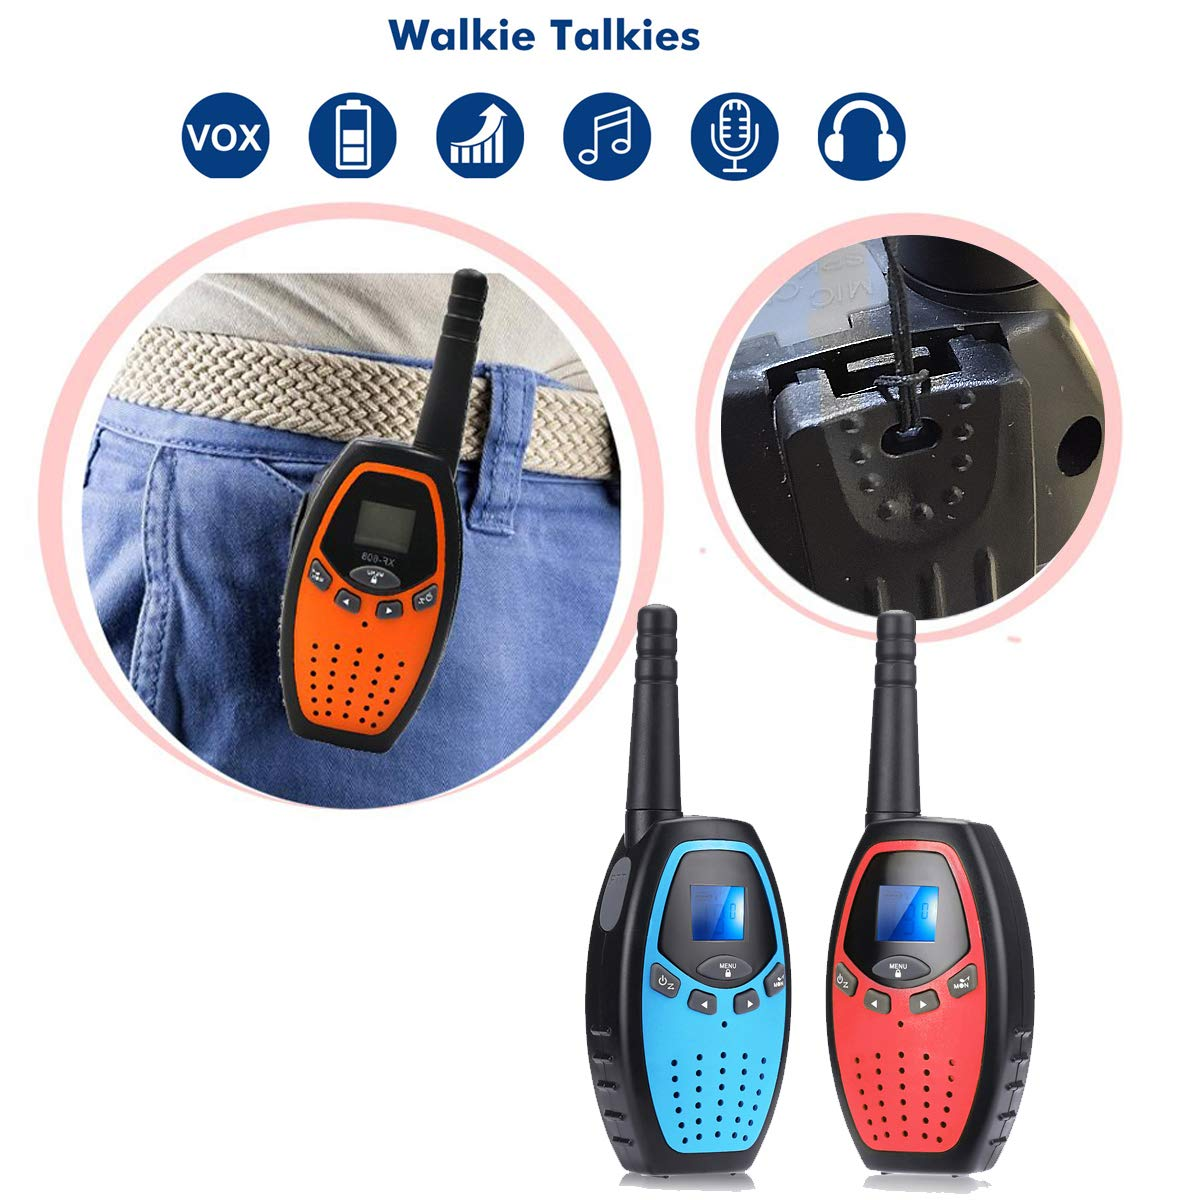 Fistone Walkie Talkies for Kids, 3 Packs 22 Channels 2 Way Radio Long Range Interphone Toys for Boy & Girls Age 3 6 7 8 9 12 Up for Outdoor Adventures, Camping, Hiking by Fistone (Image #6)